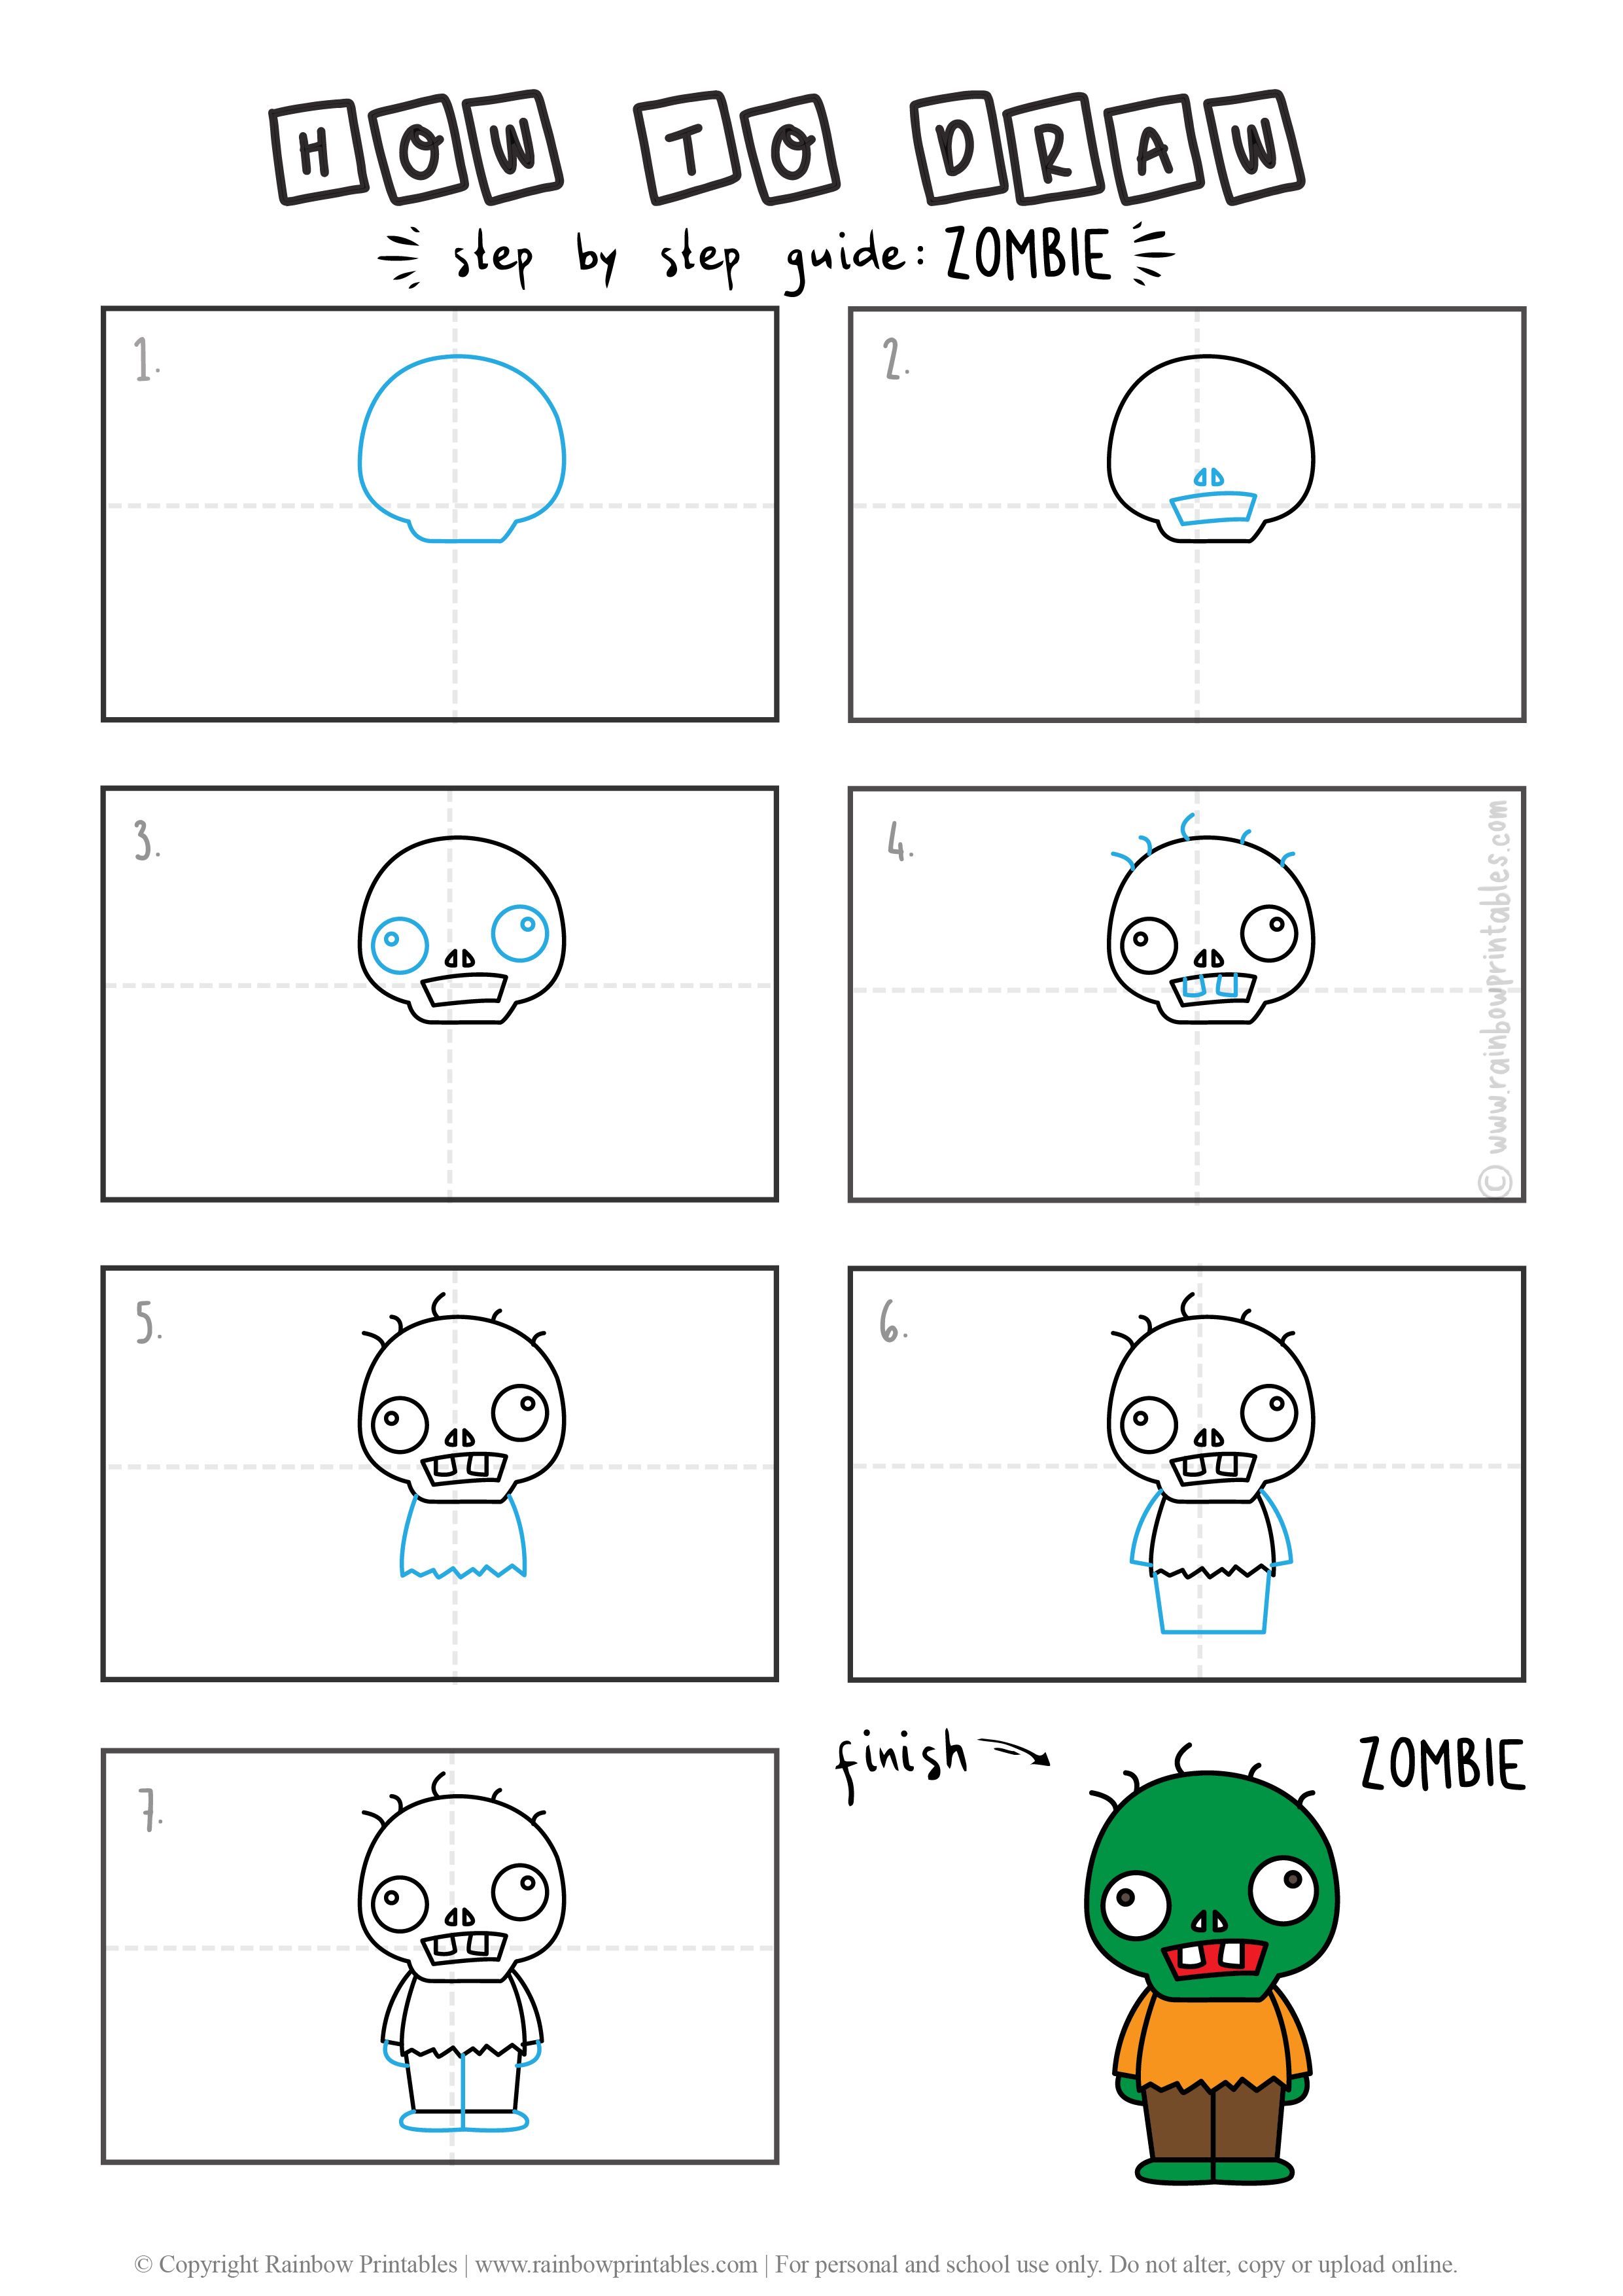 HOW TO DRAW A ZOMBIE UNDEAD HALLOWEEN MONSTER CUTE CARTOON GUIDE ILLUSTRATION STEP BY STEP EASY SIMPLE FOR KIDS